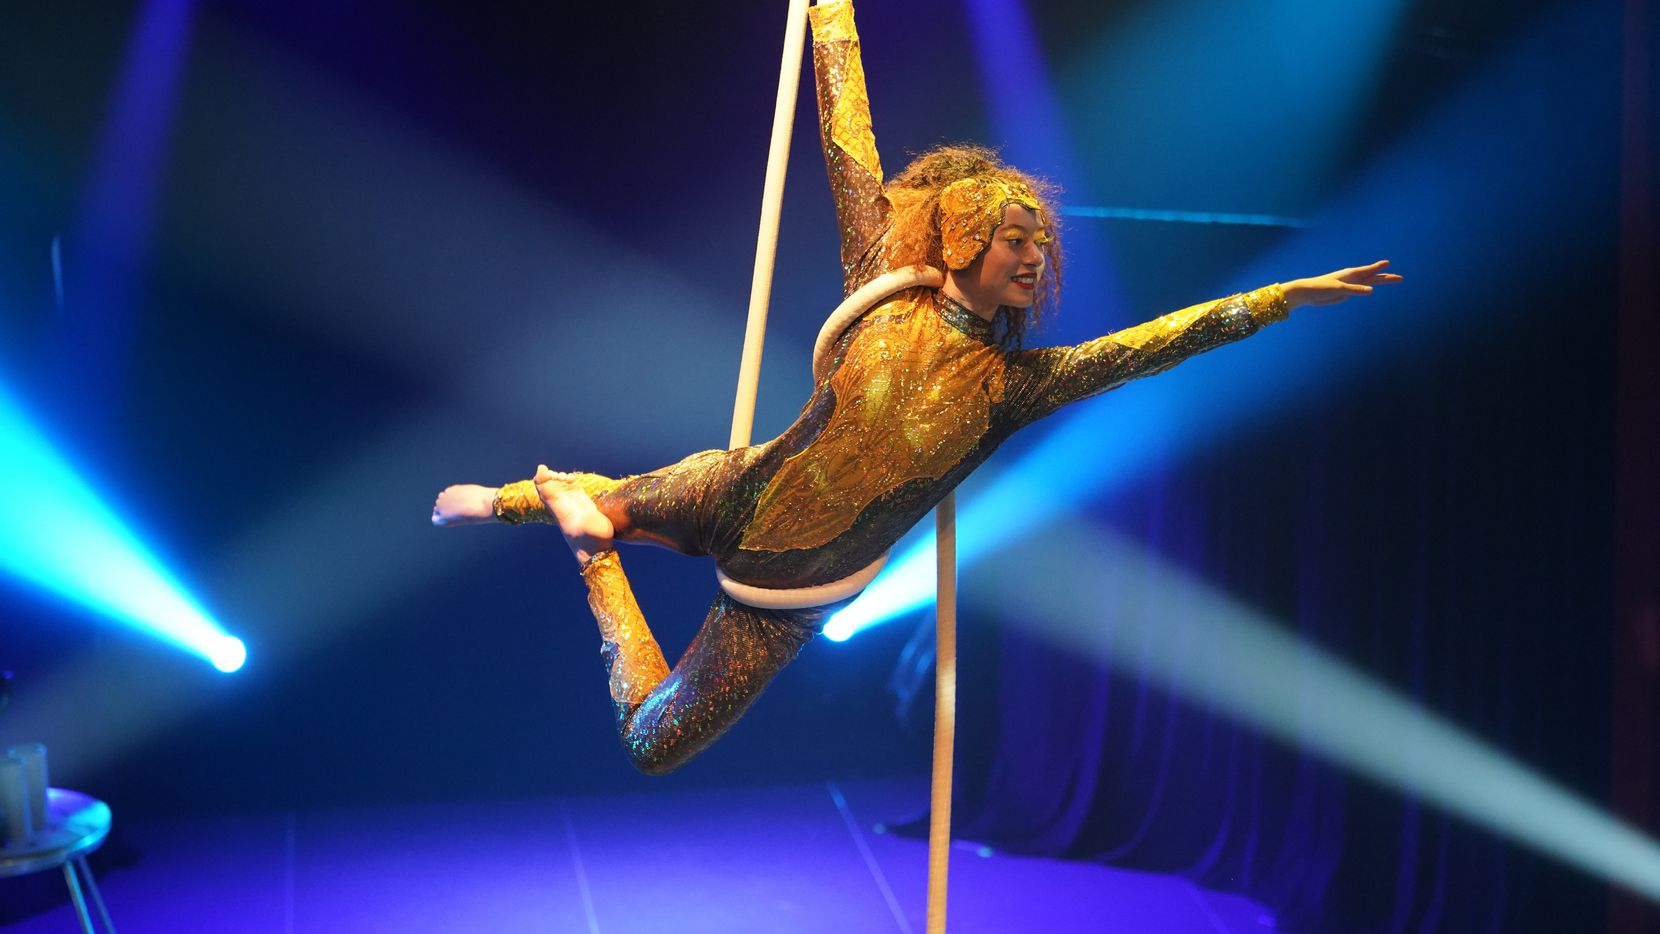 City of McKinney presents Omaggio, a Lone Star Circus production, in historic downtown McKinney from Oct. 14-17, 2021.